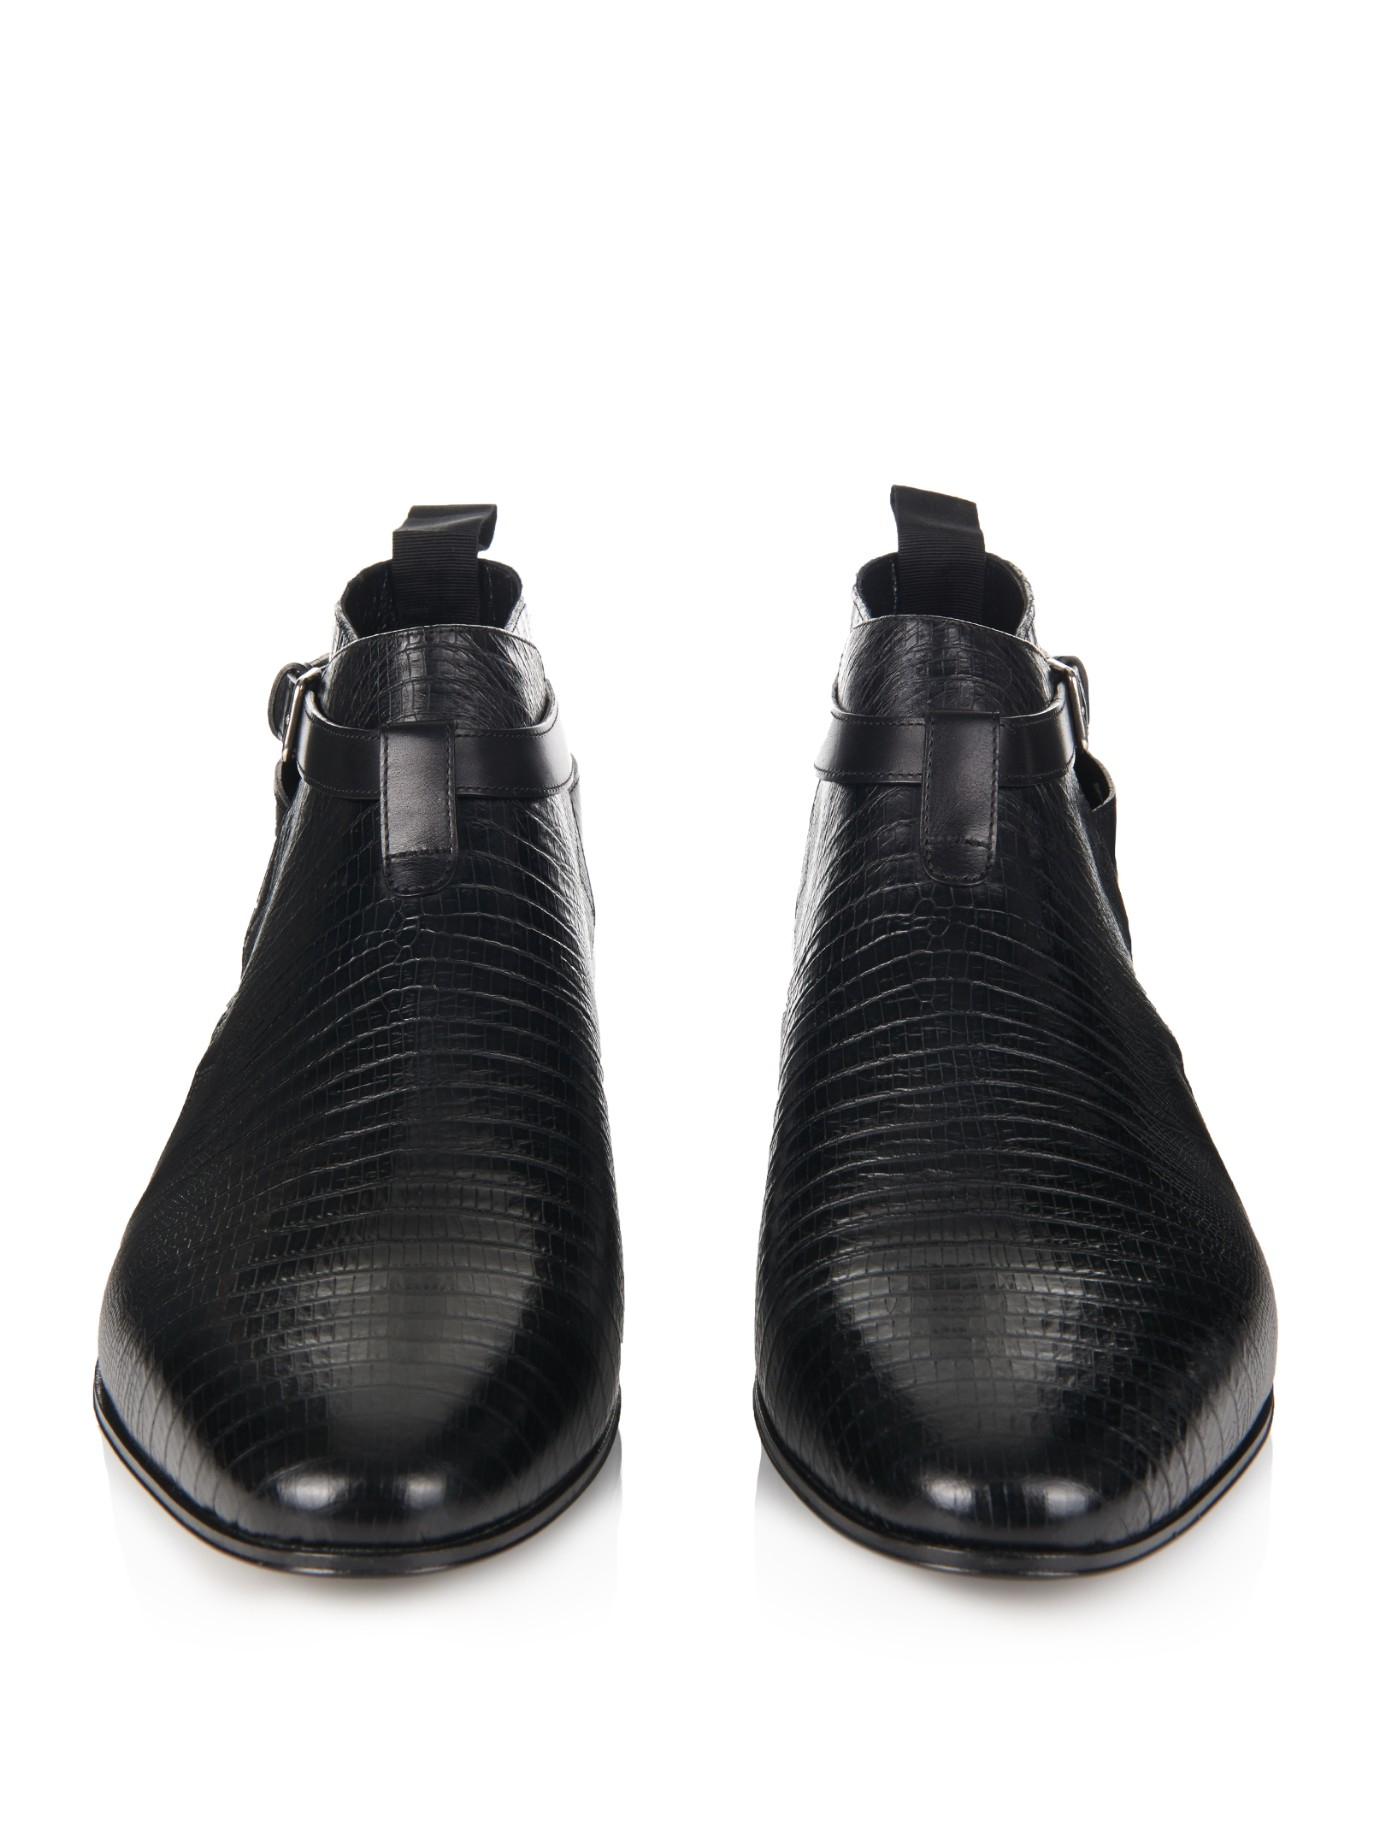 304a15949ce Saint Laurent Lizard-Effect Leather Ankle Boots in Black for Men - Lyst